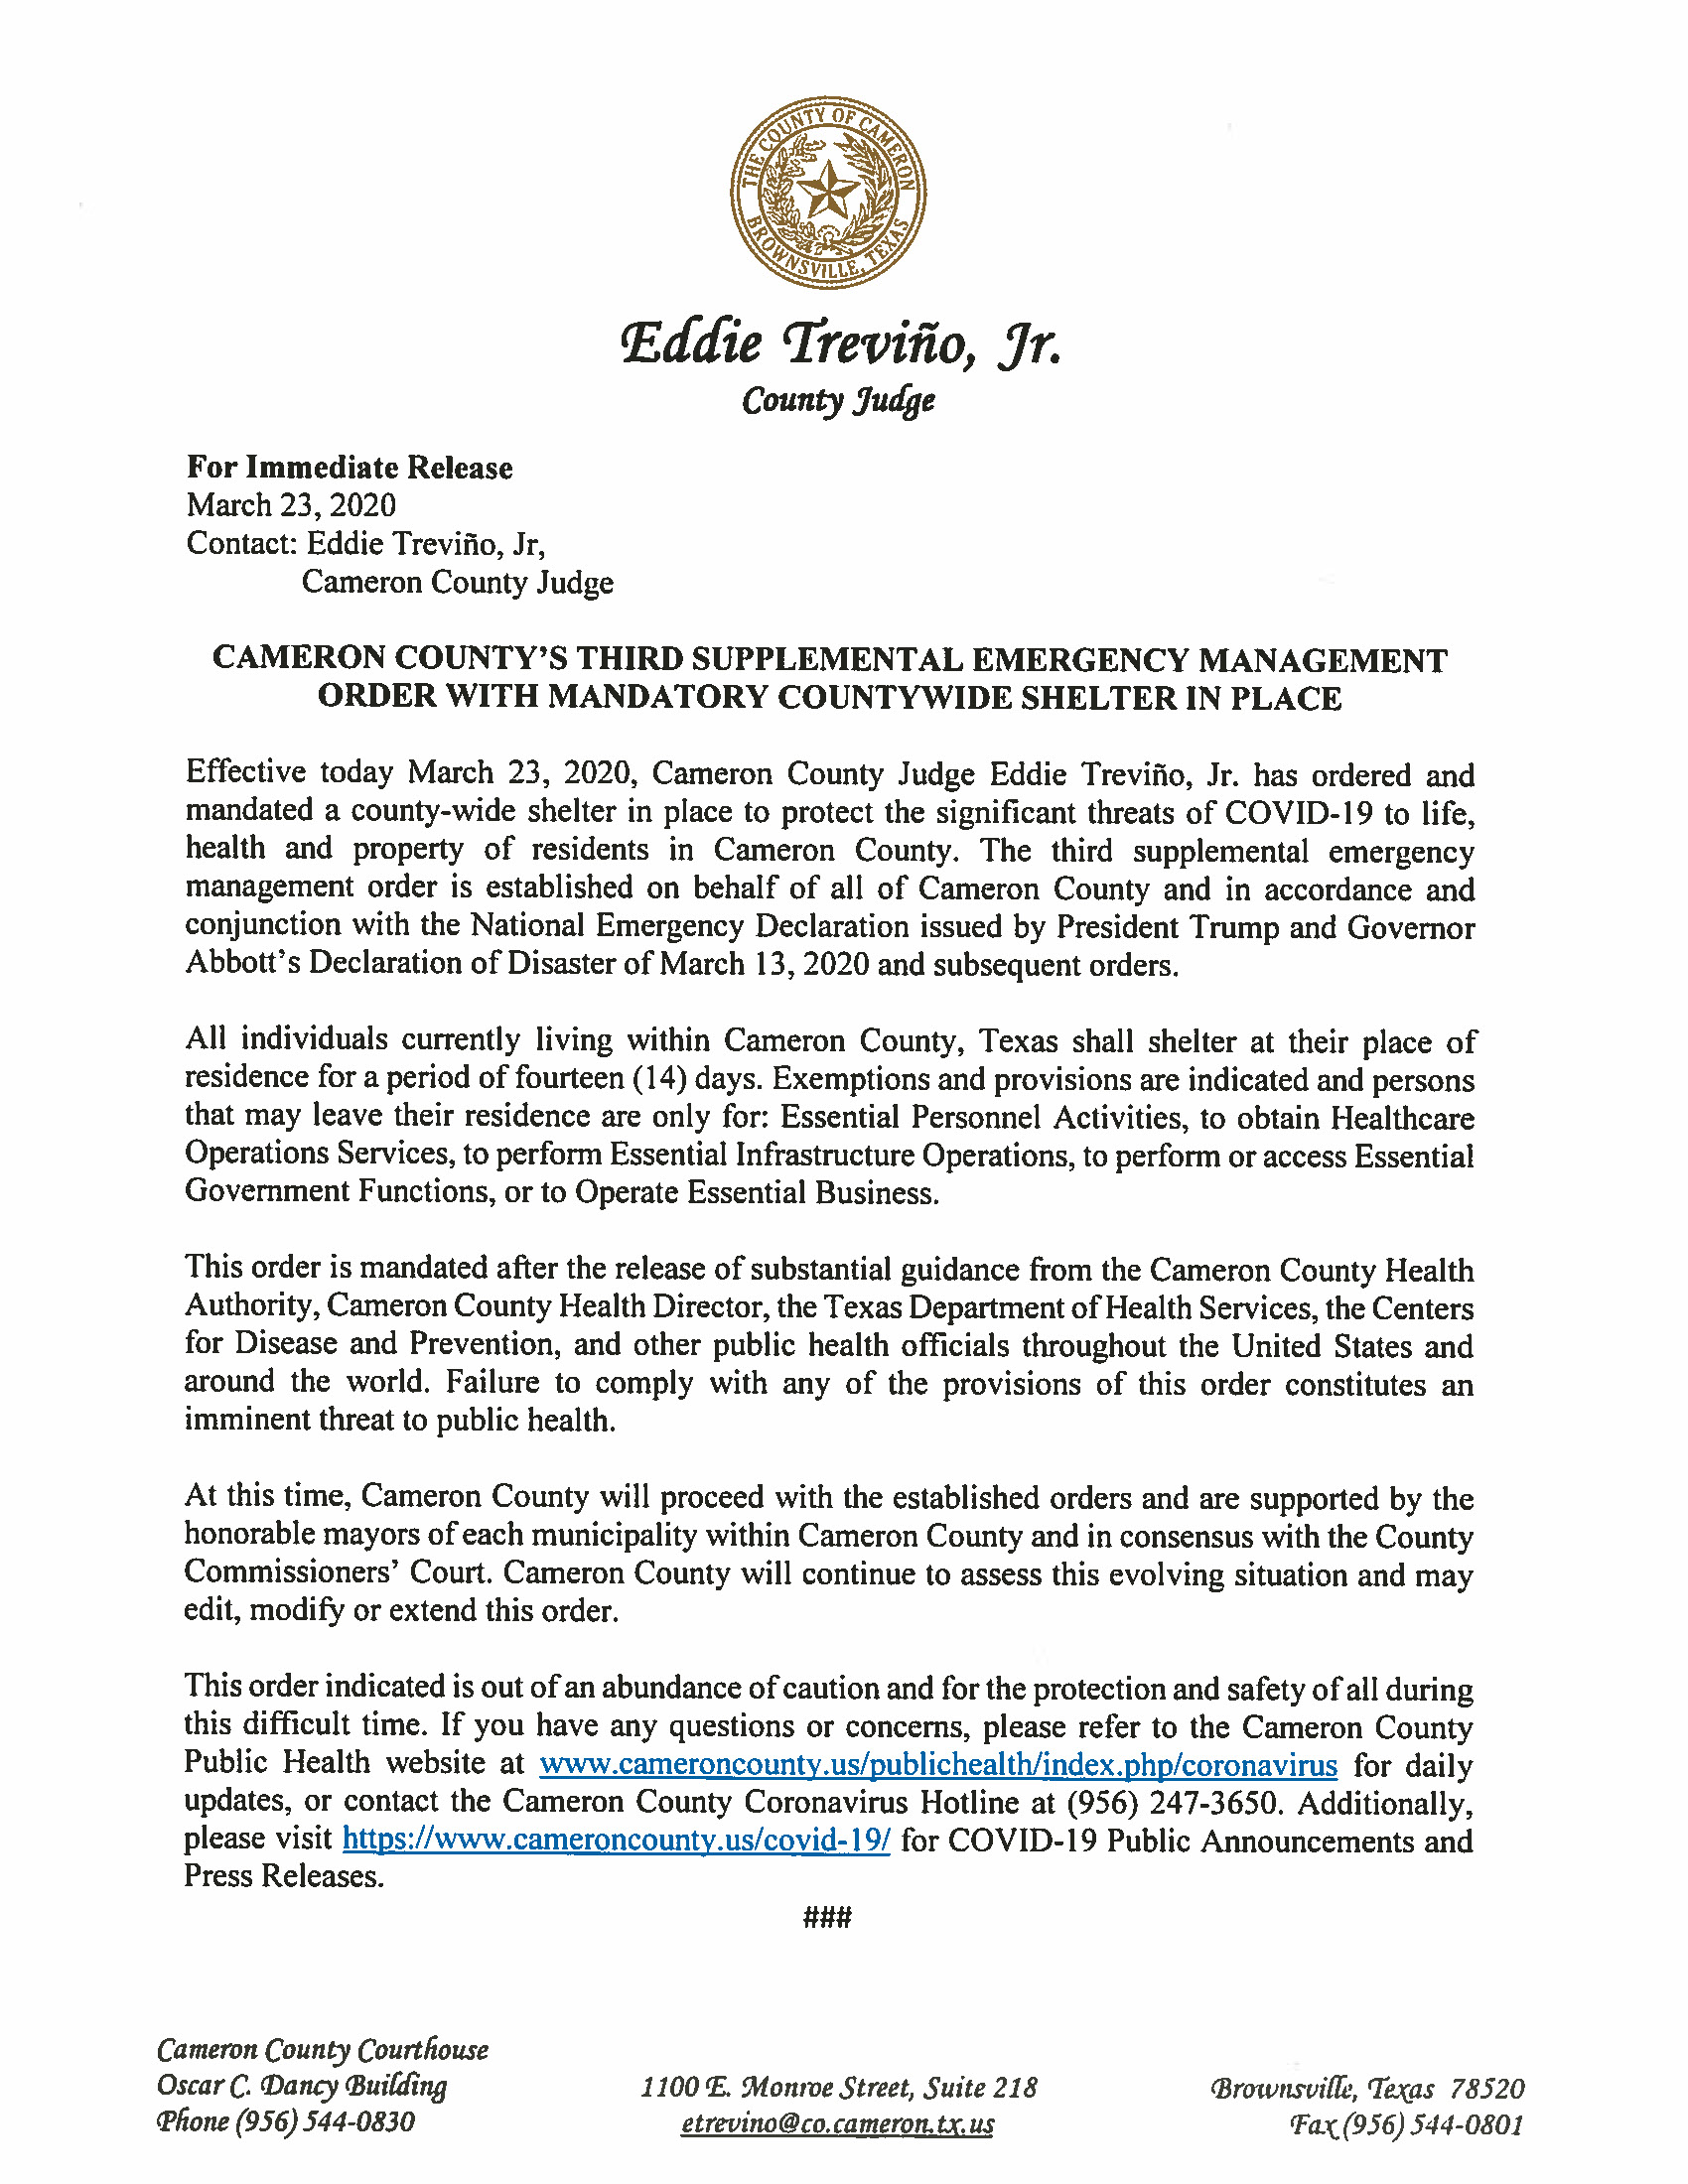 03.23.2020 Press Release Third Supplemental Order And Mandatory Countywide Shelter In Place